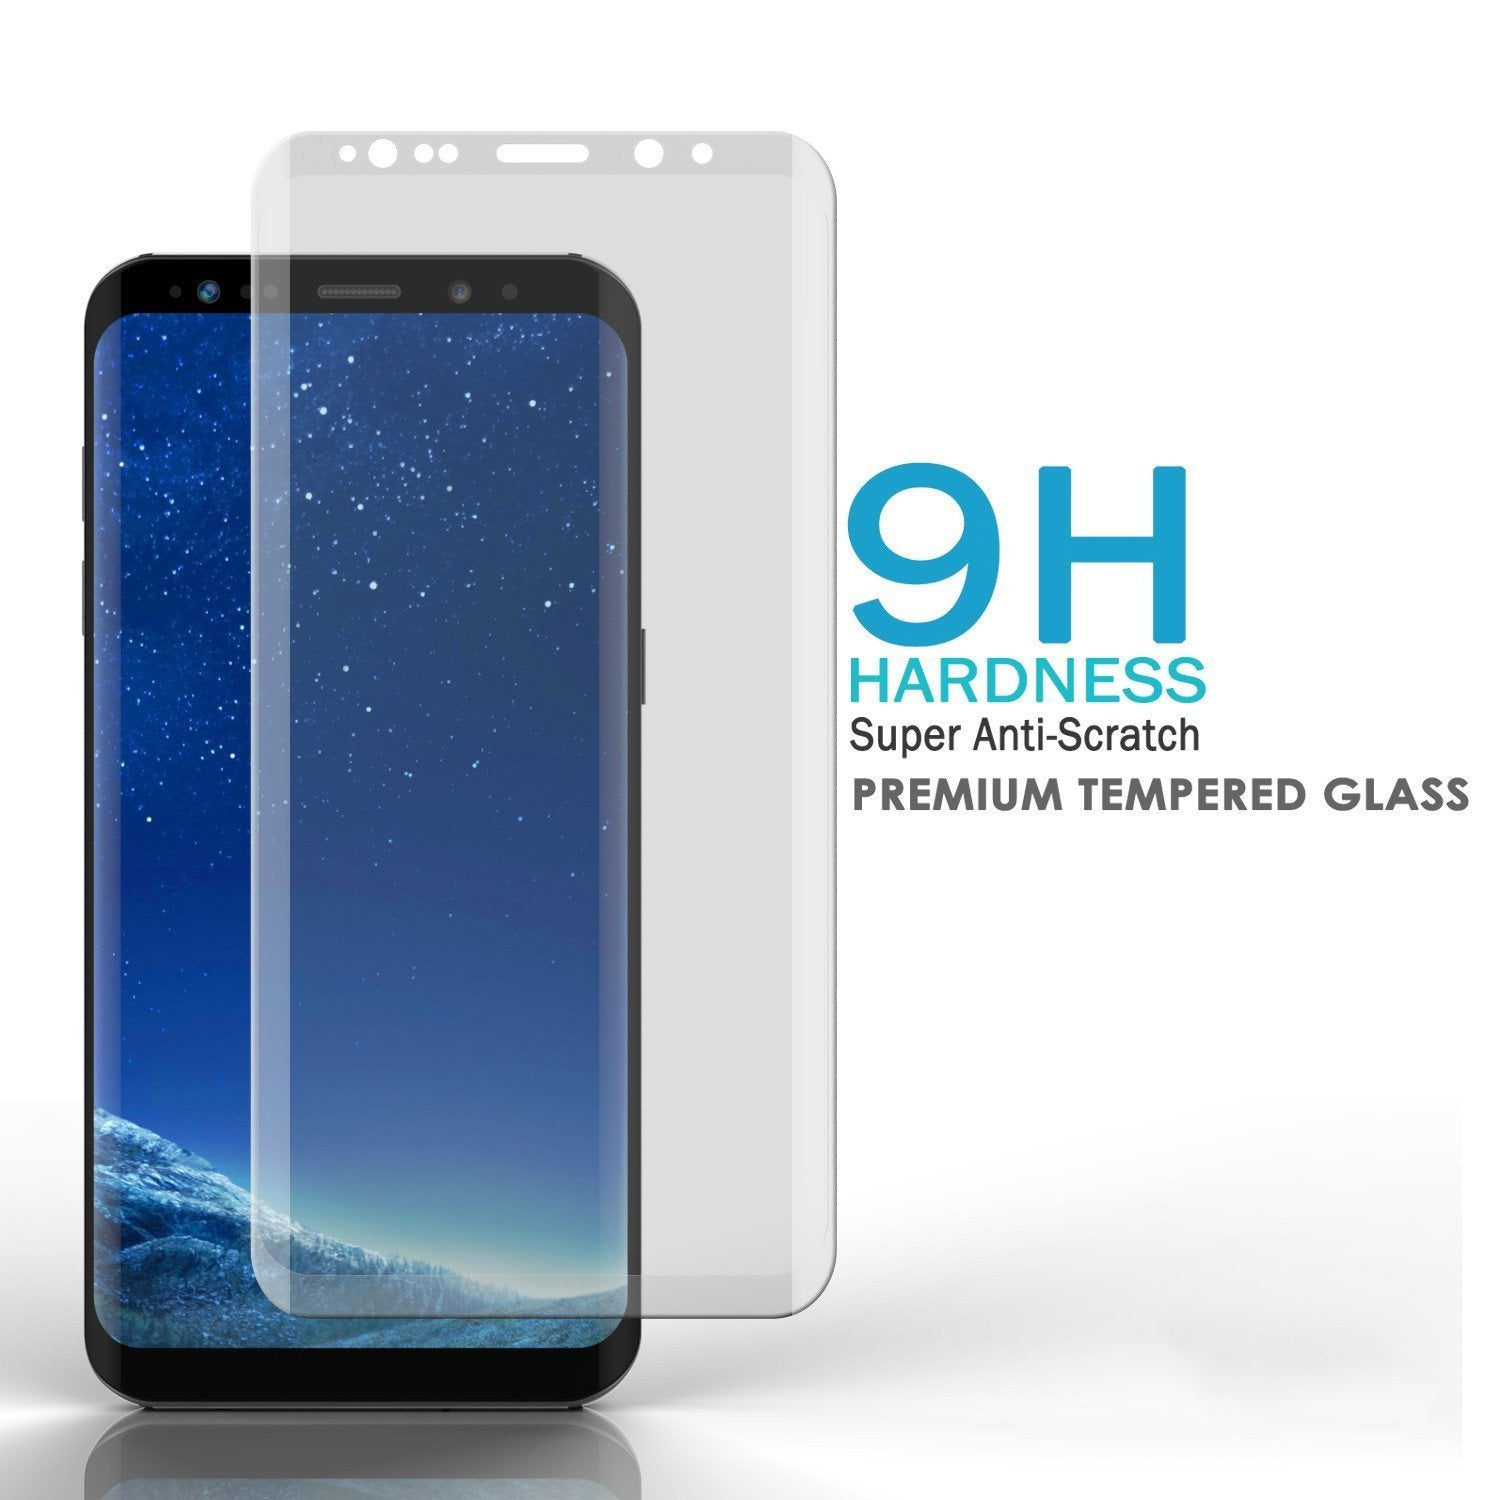 Galaxy S8 Plus Punkcase SHIELD Tempered Glass 0.33mm Thick 9H, Clear